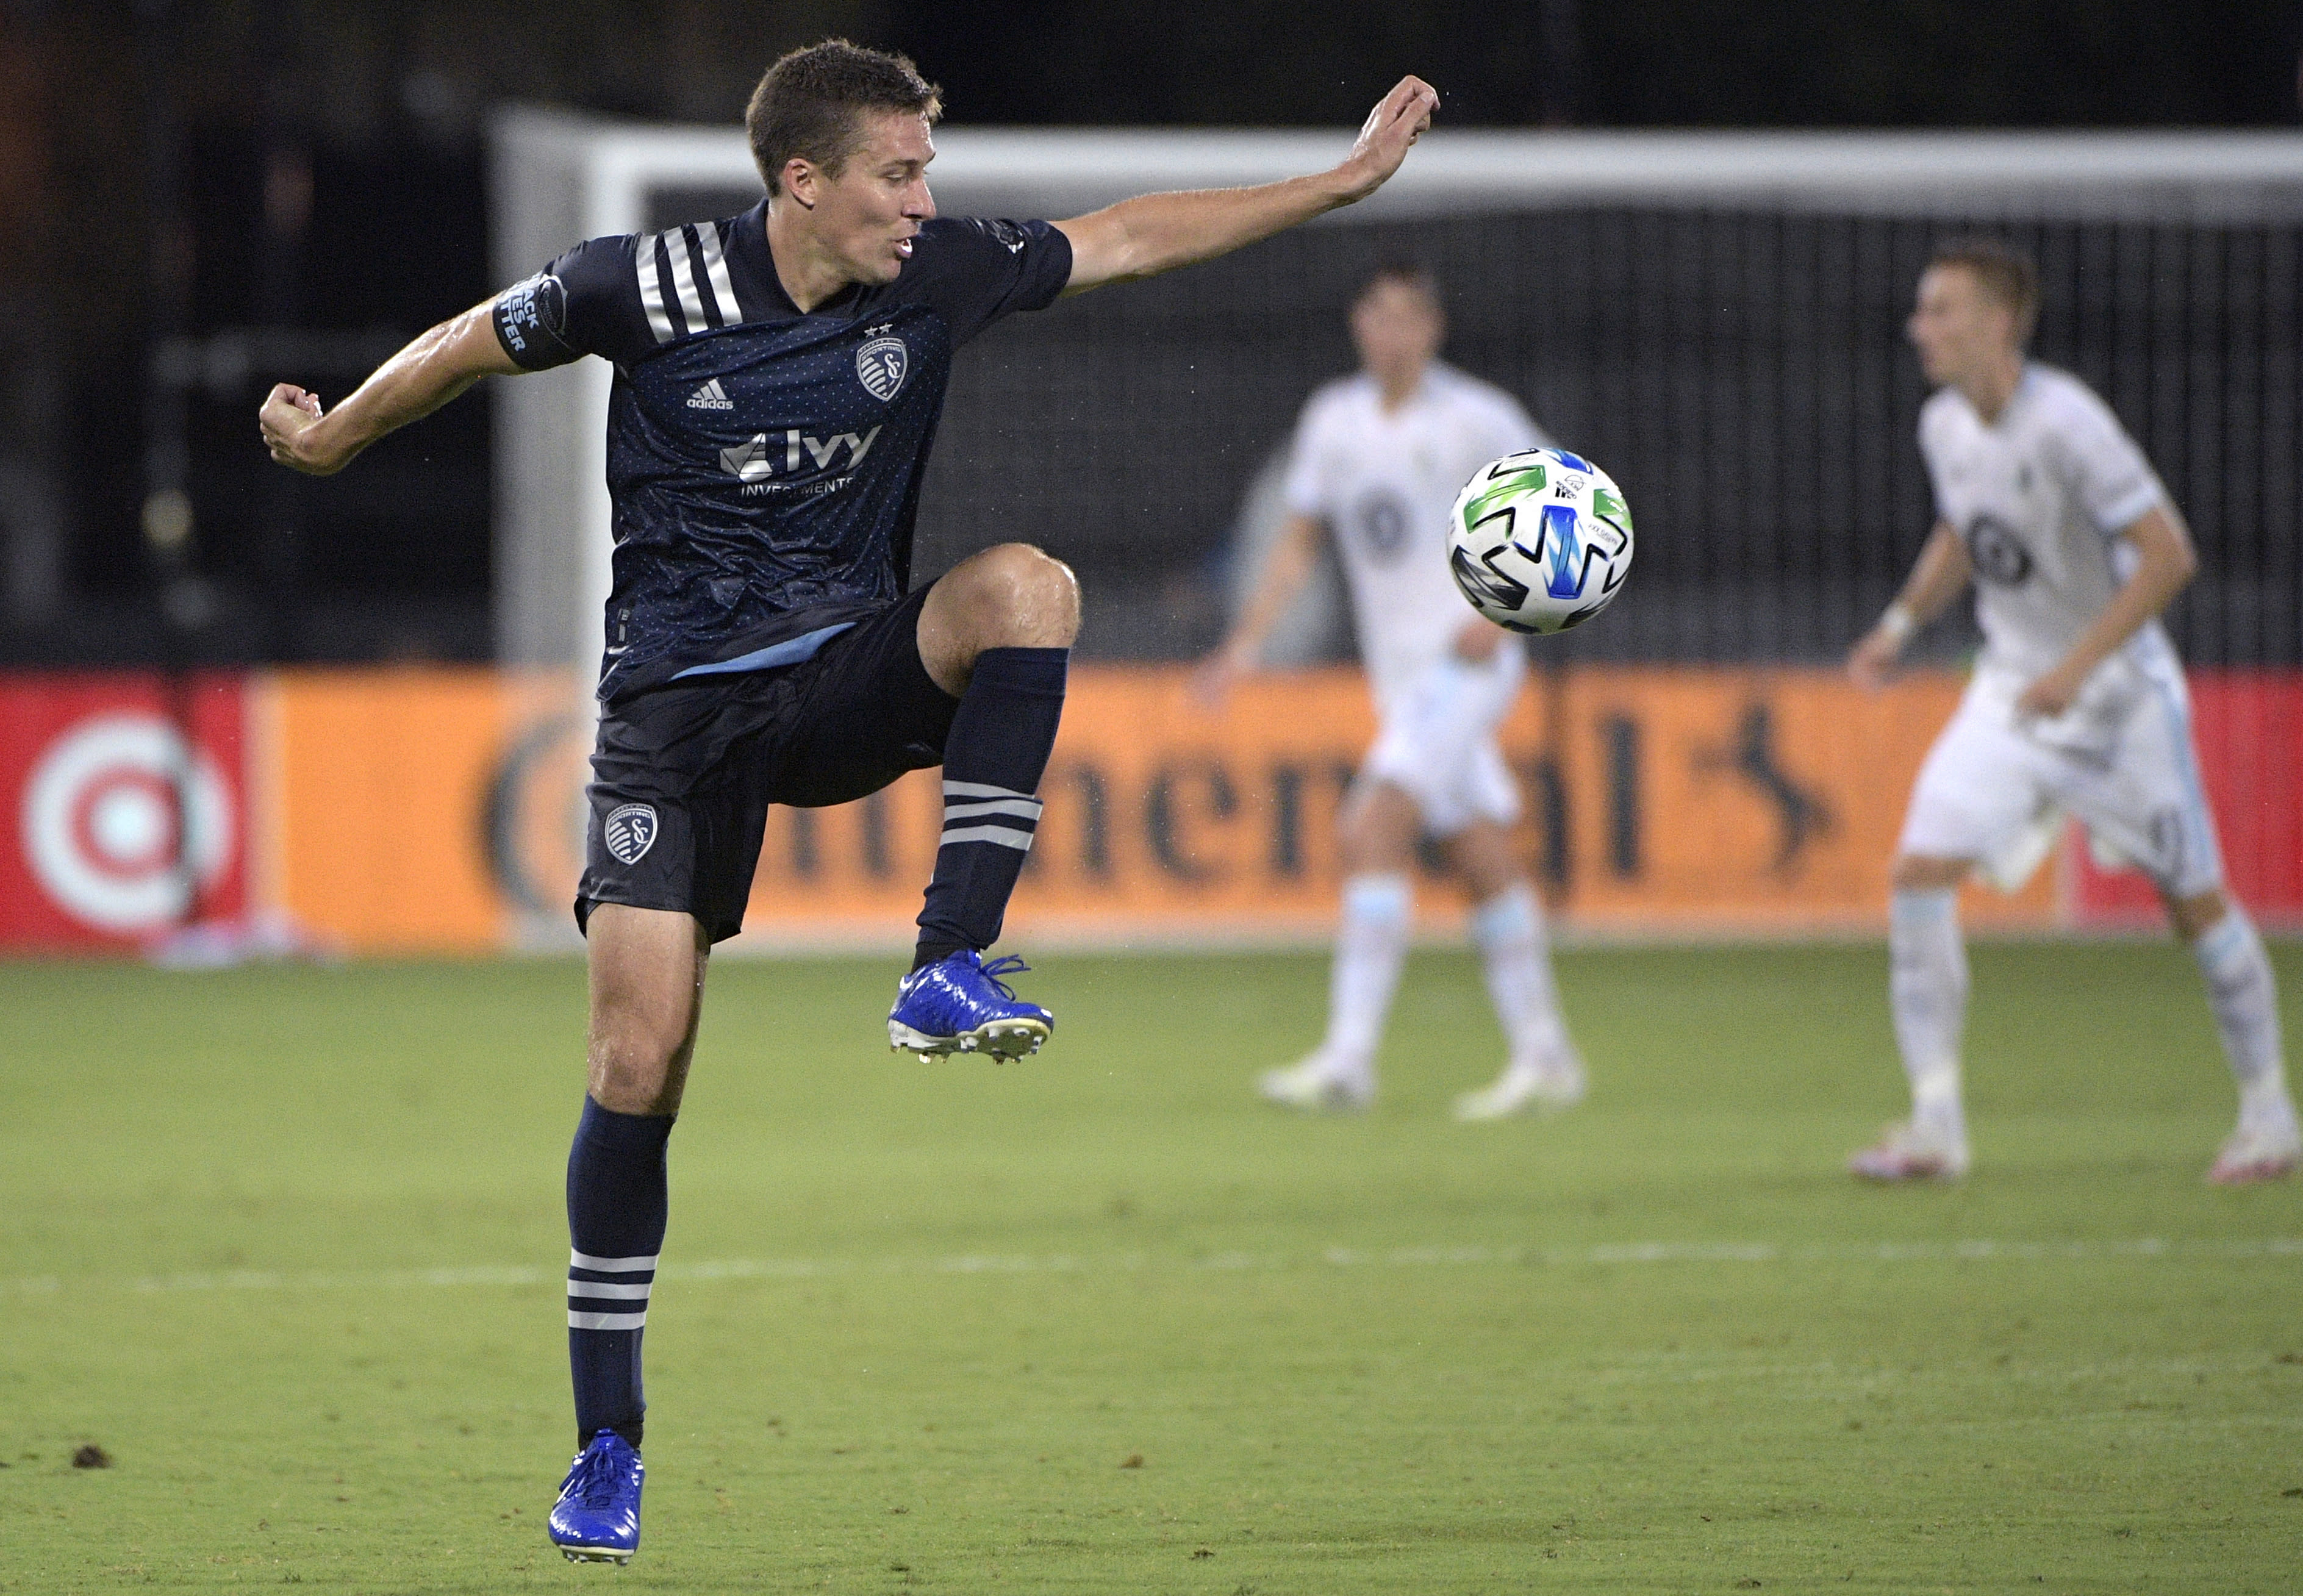 Sporting Kansas City defender Matt Besler, left, controls a pass during the first half of the team's MLS soccer match against Minnesota United, Sunday, July 12, 2020, in Kissimmee, Fla. (AP Photo/Phelan M. Ebenhack)